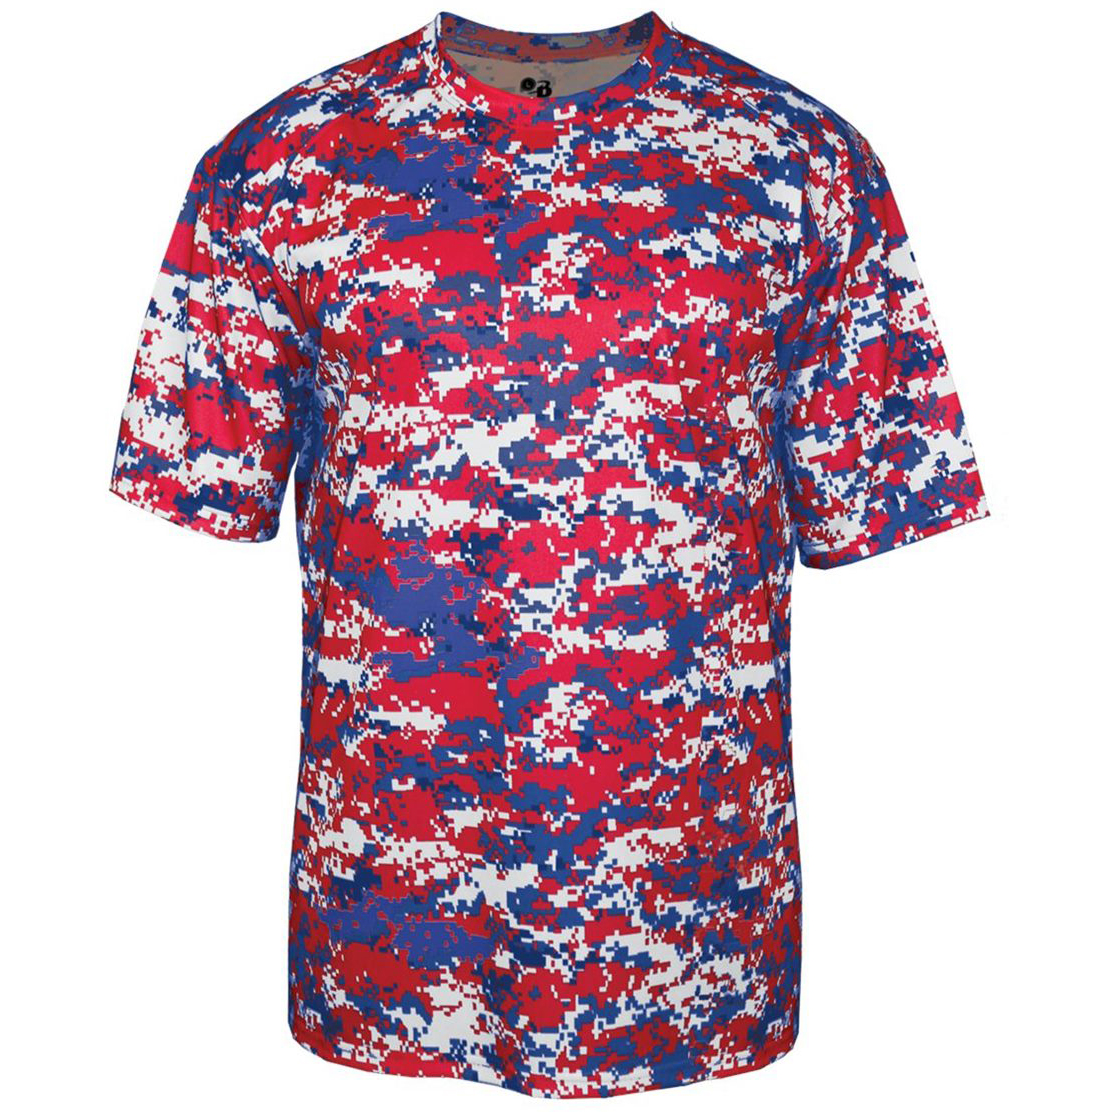 a4bd98b1f Badger Sport 4180 Digital Camo Short Sleeve T-Shirt - Red Royal Digital